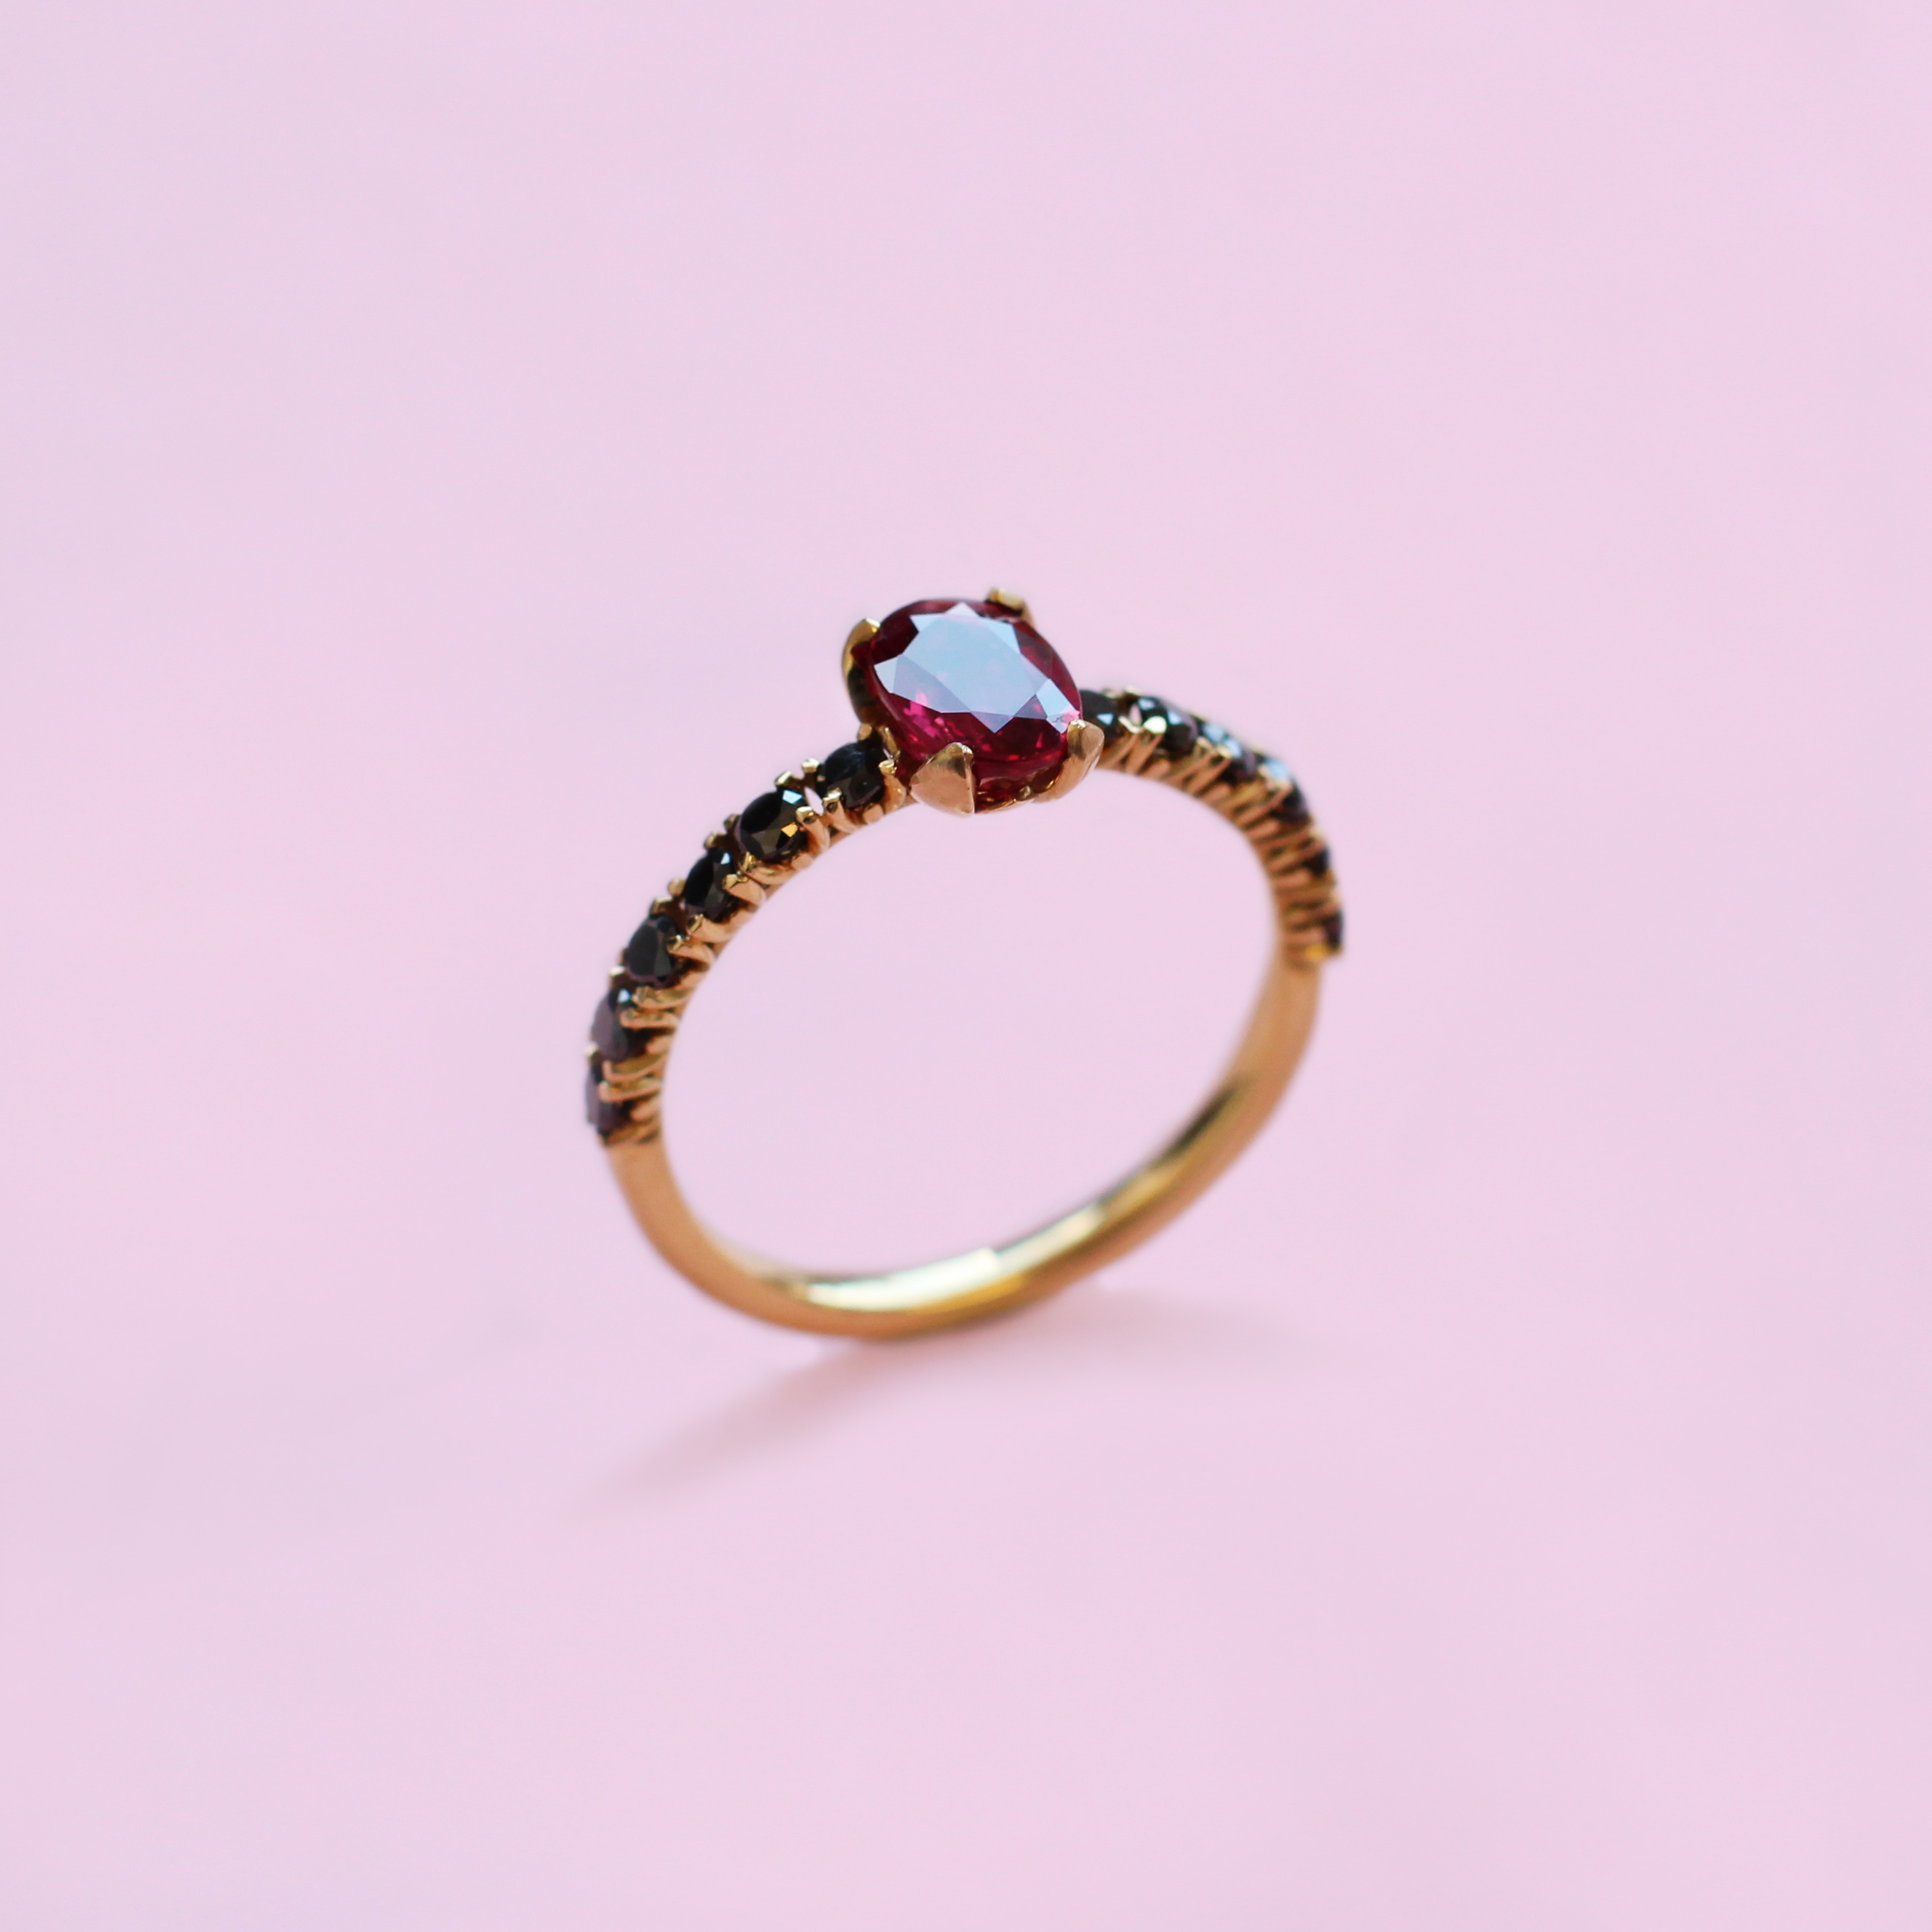 blossom solitaire ring – ruby, black diamond and 18k yellow gold